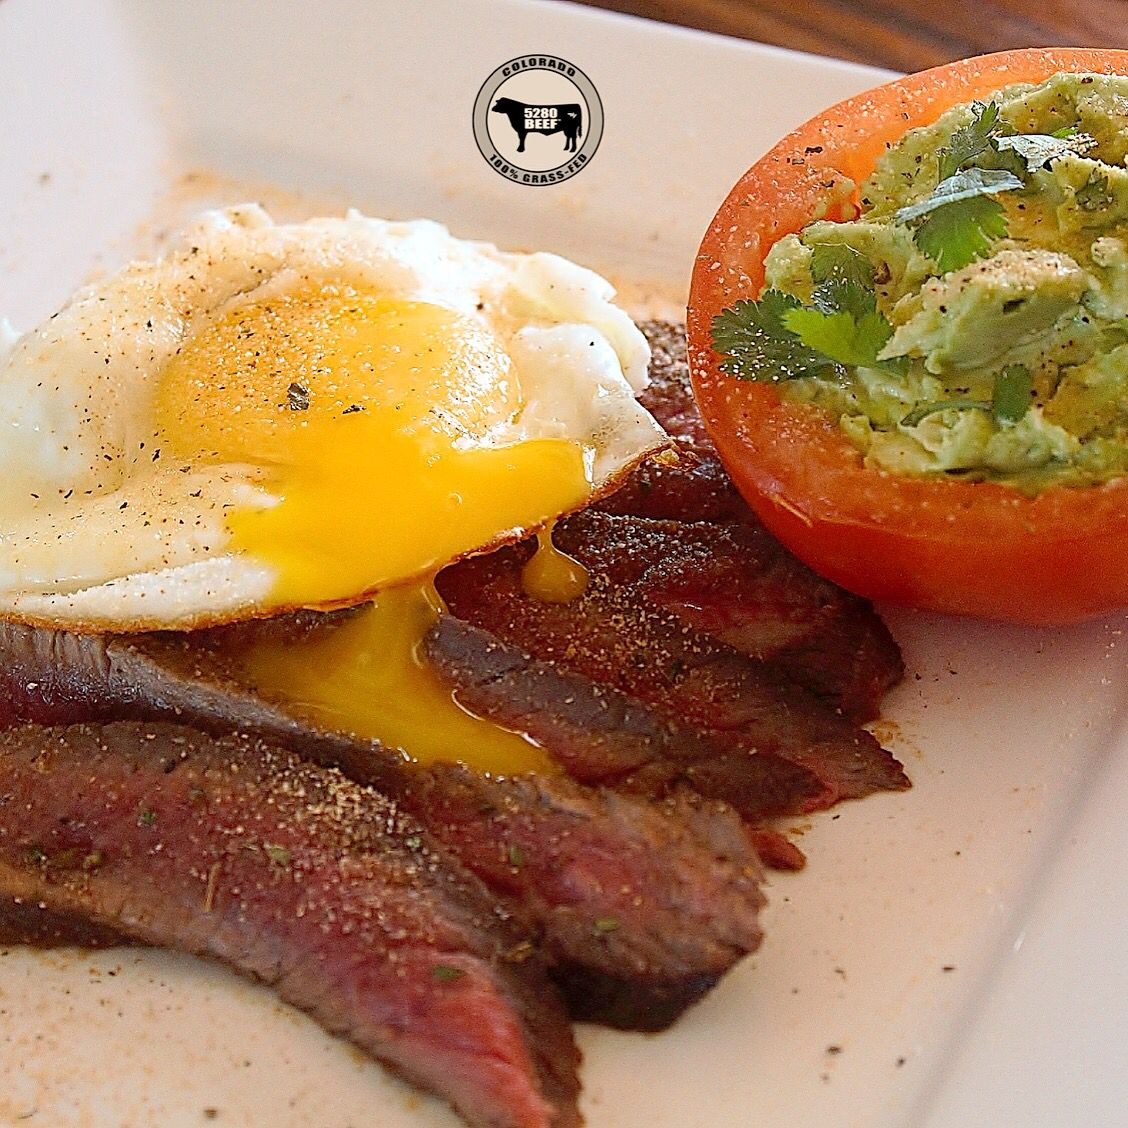 We marinated one of our 5280 Beef® Sirloin Tip steaks overnight in balsamic vinegar & @flavorgod Garlic Lovers seasoning. We seared the steak & cooked one of our farm-fresh eggs in @omgheebutter and added a guac stuffed tomato on the side. To top it off, we sprinkled more #flavorgod goodness and some fresh cilantro!